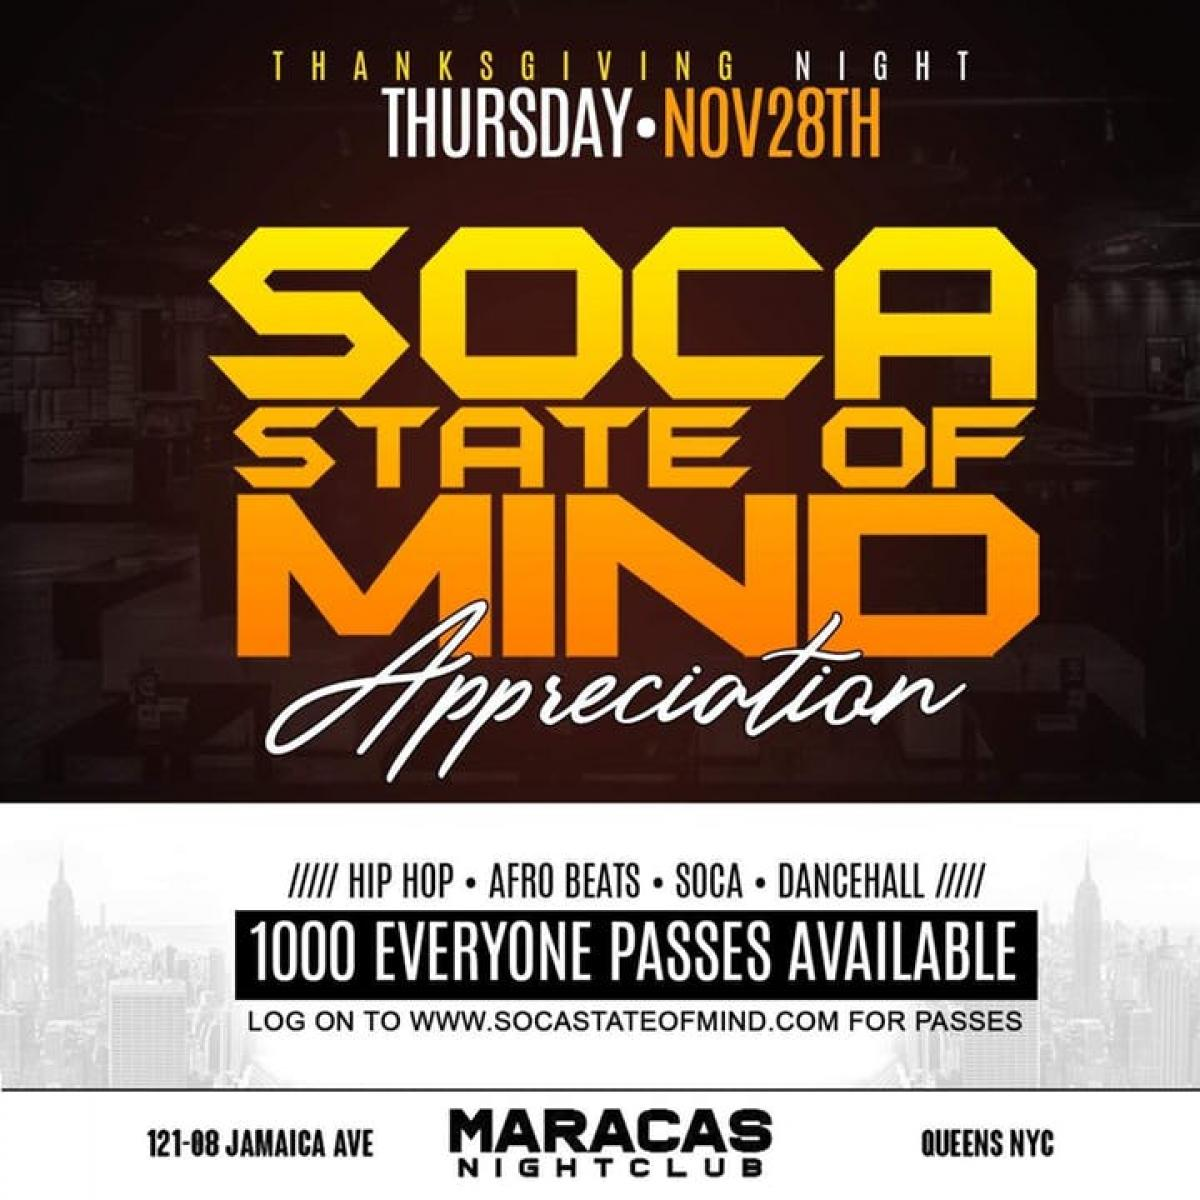 Soca State of Mind Appreciation flyer or graphic.